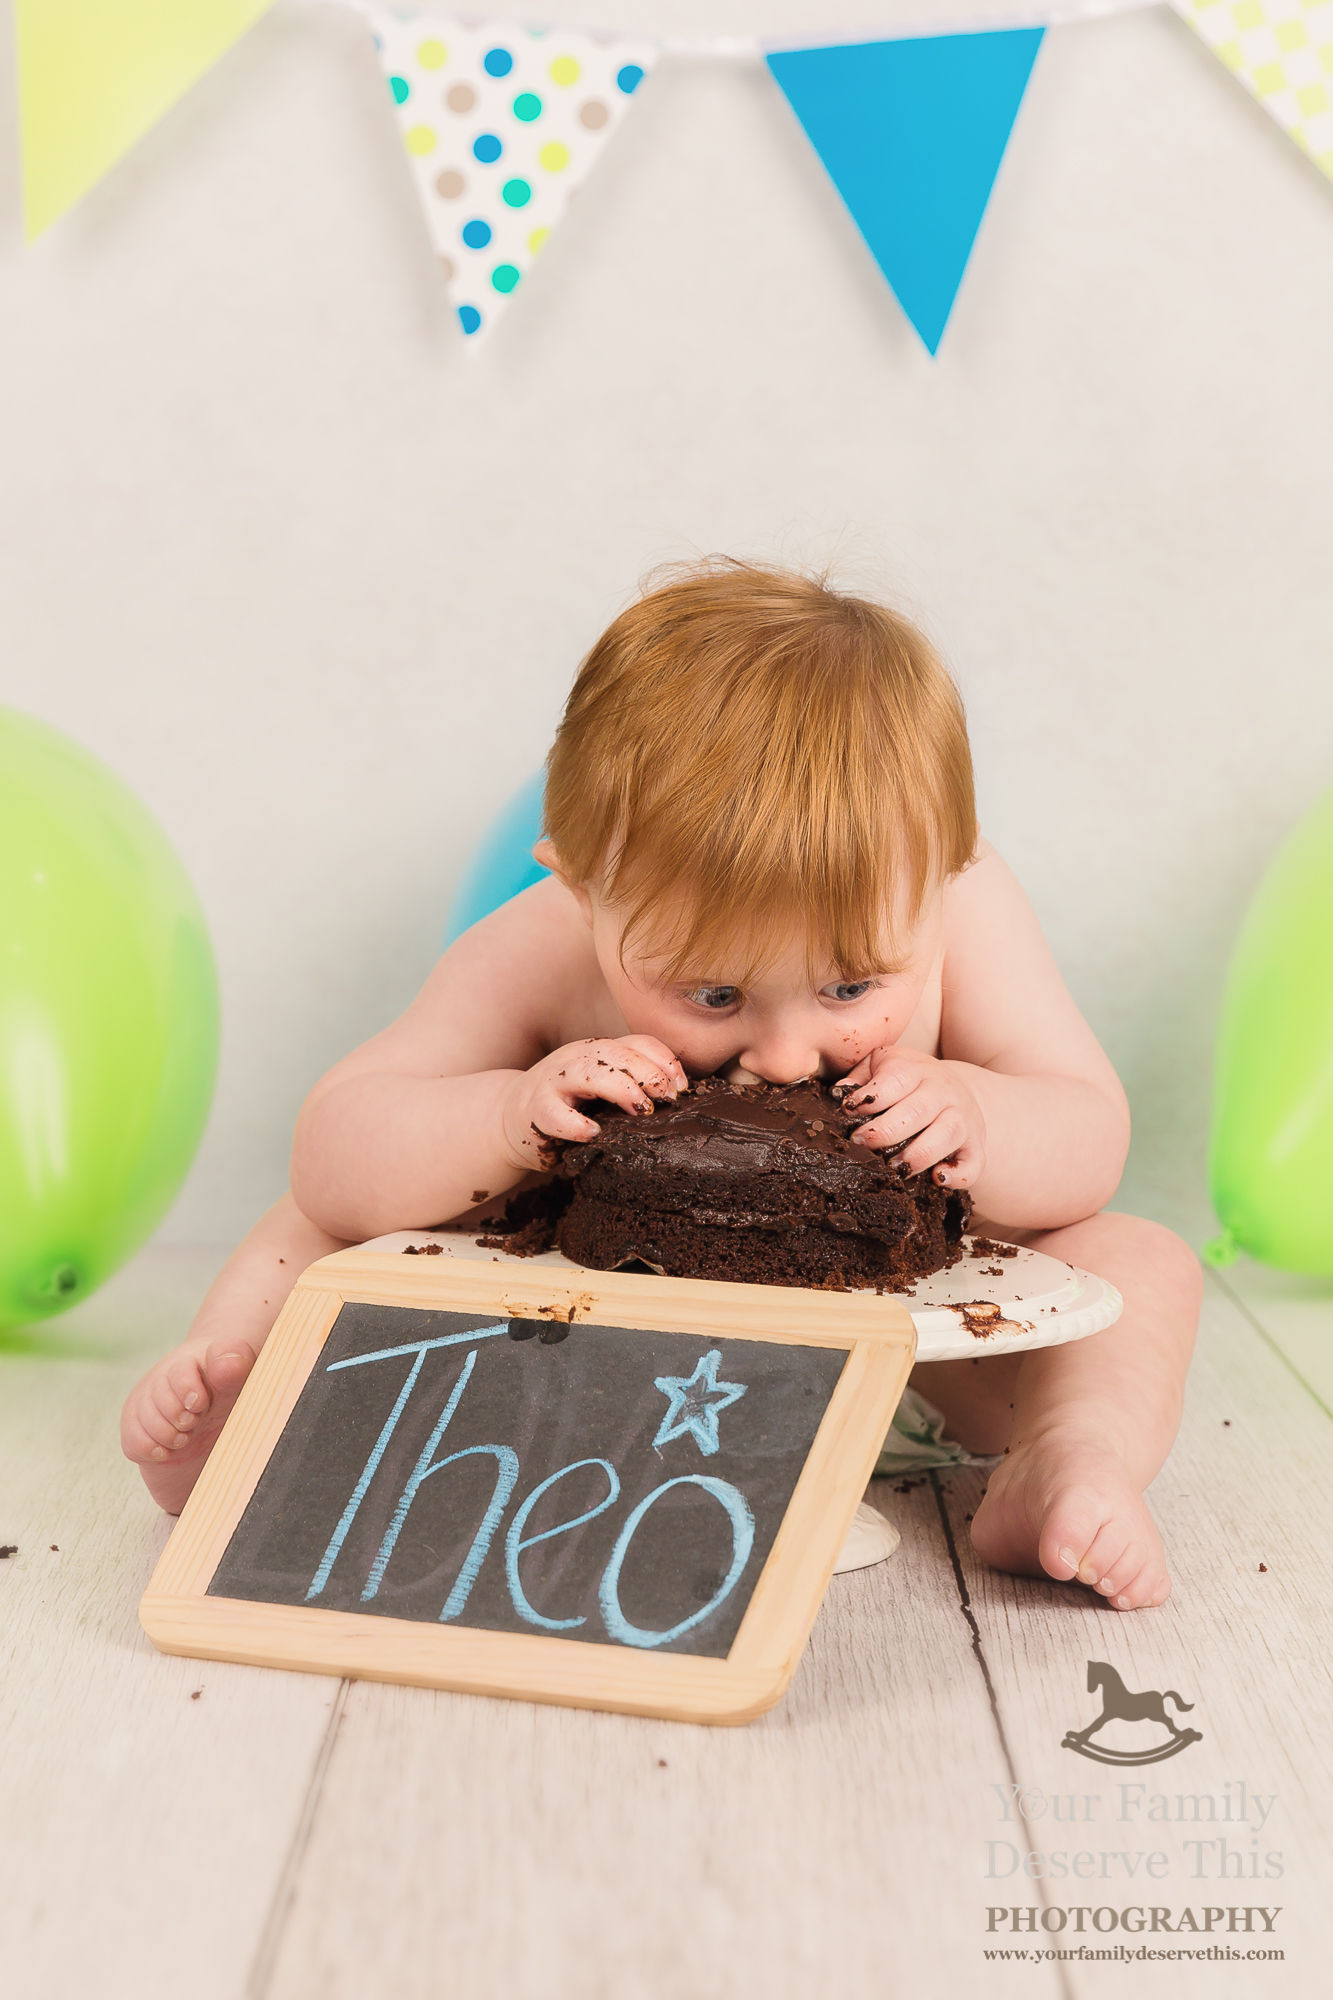 Wow! Theo LOVING the chocolate cake. What a cutie!  yourfamilydeservethis.com